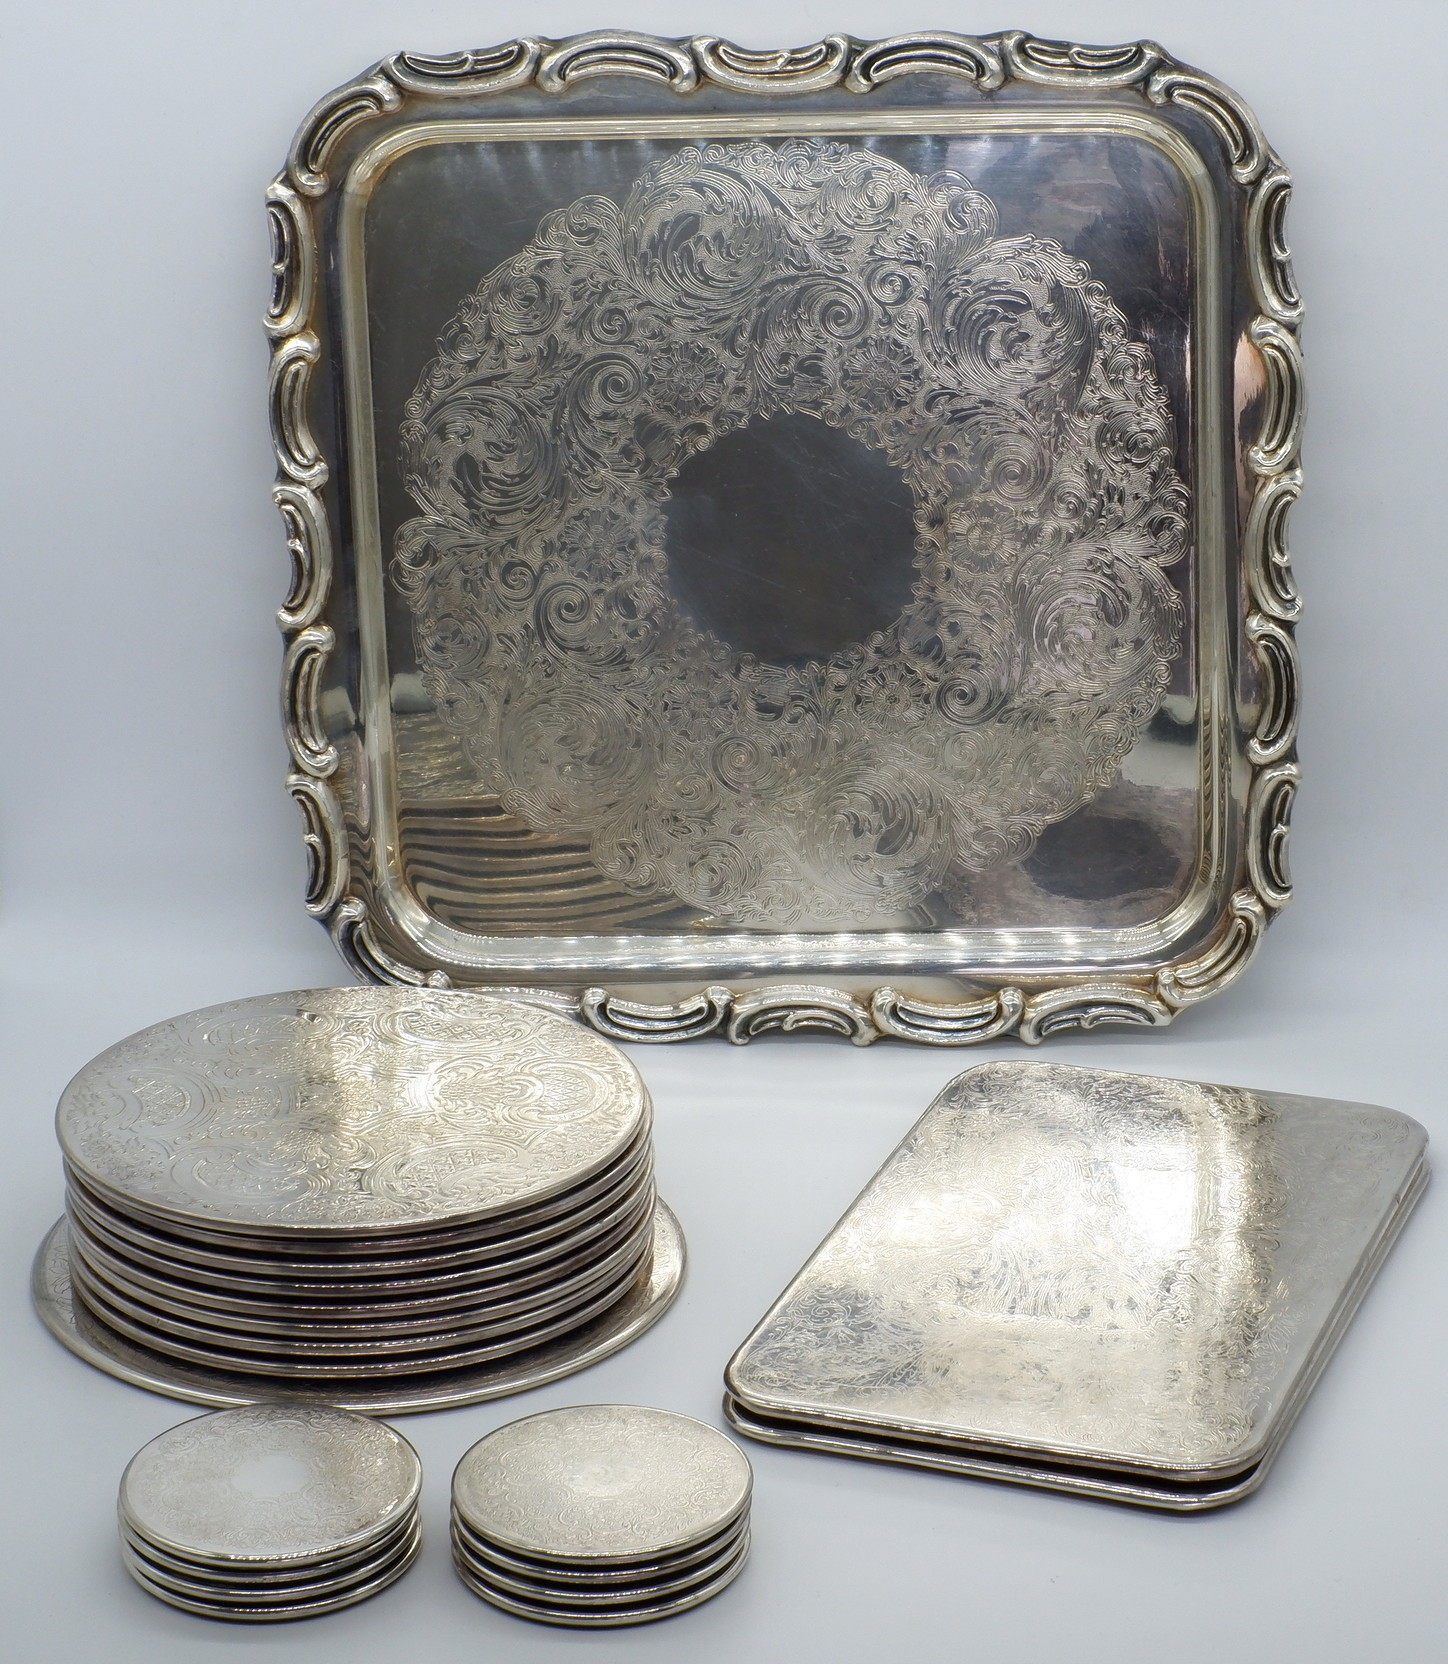 'Group of Strachan Coasters and a Galleon Silver Plate Tray'